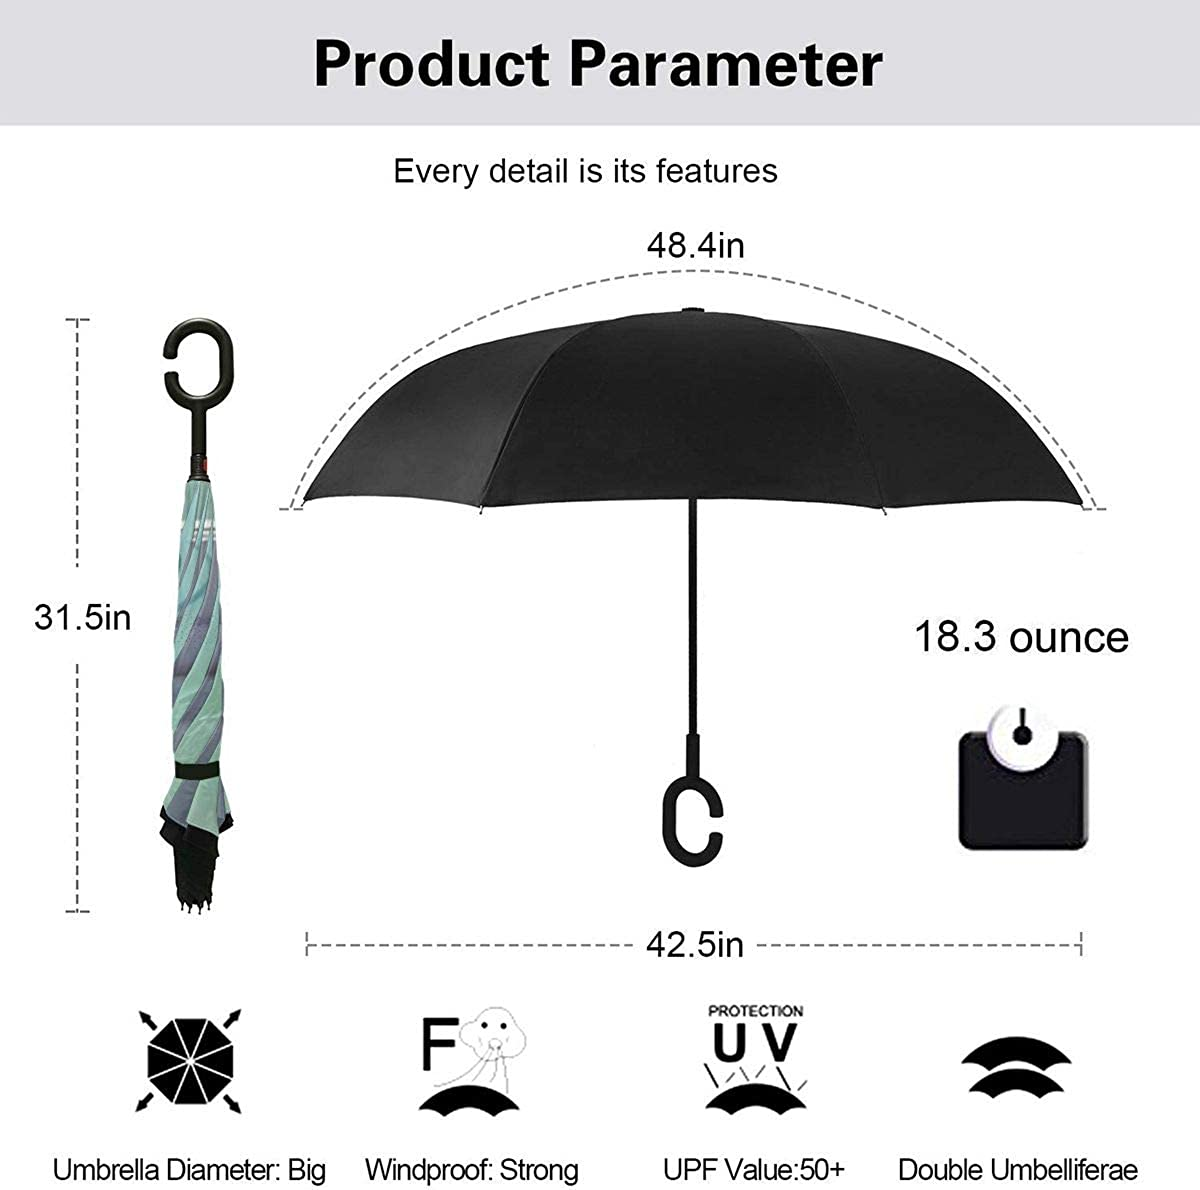 Reverse Umbrella Double Layer Inverted Umbrellas For Car Rain Outdoor With C-Shaped Handle Animal Cat Kitten Miss You Customized